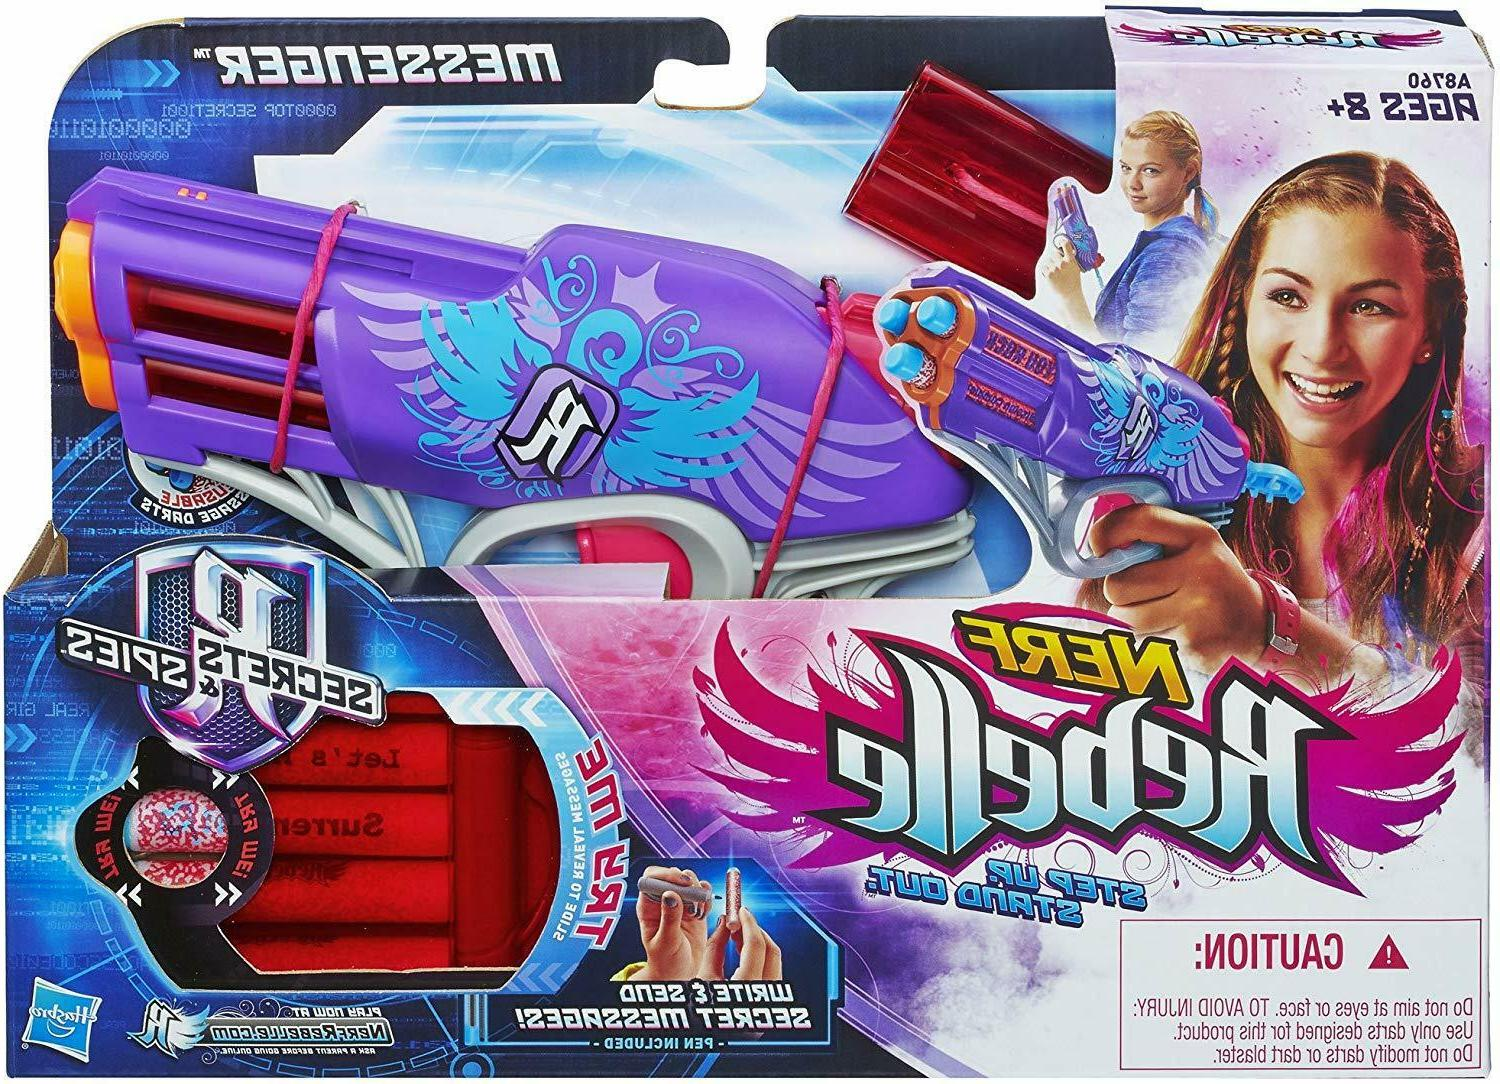 rebelle messenger blaster outdoor play toy new